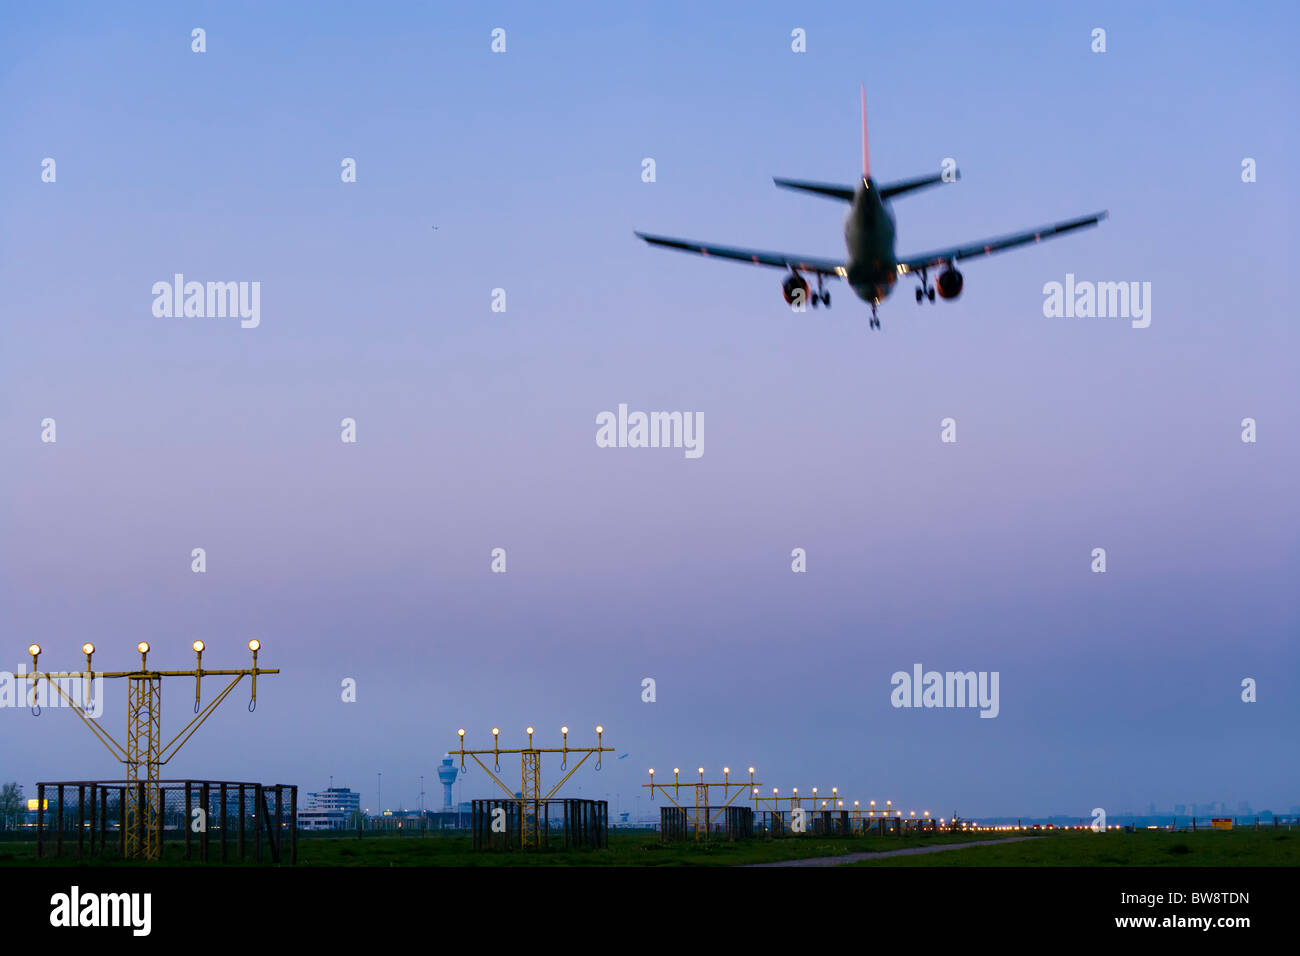 Amsterdam Schiphol Airport at dusk. Airplane plane approaching, landing, on the Kaagbaan runway. - Stock Image